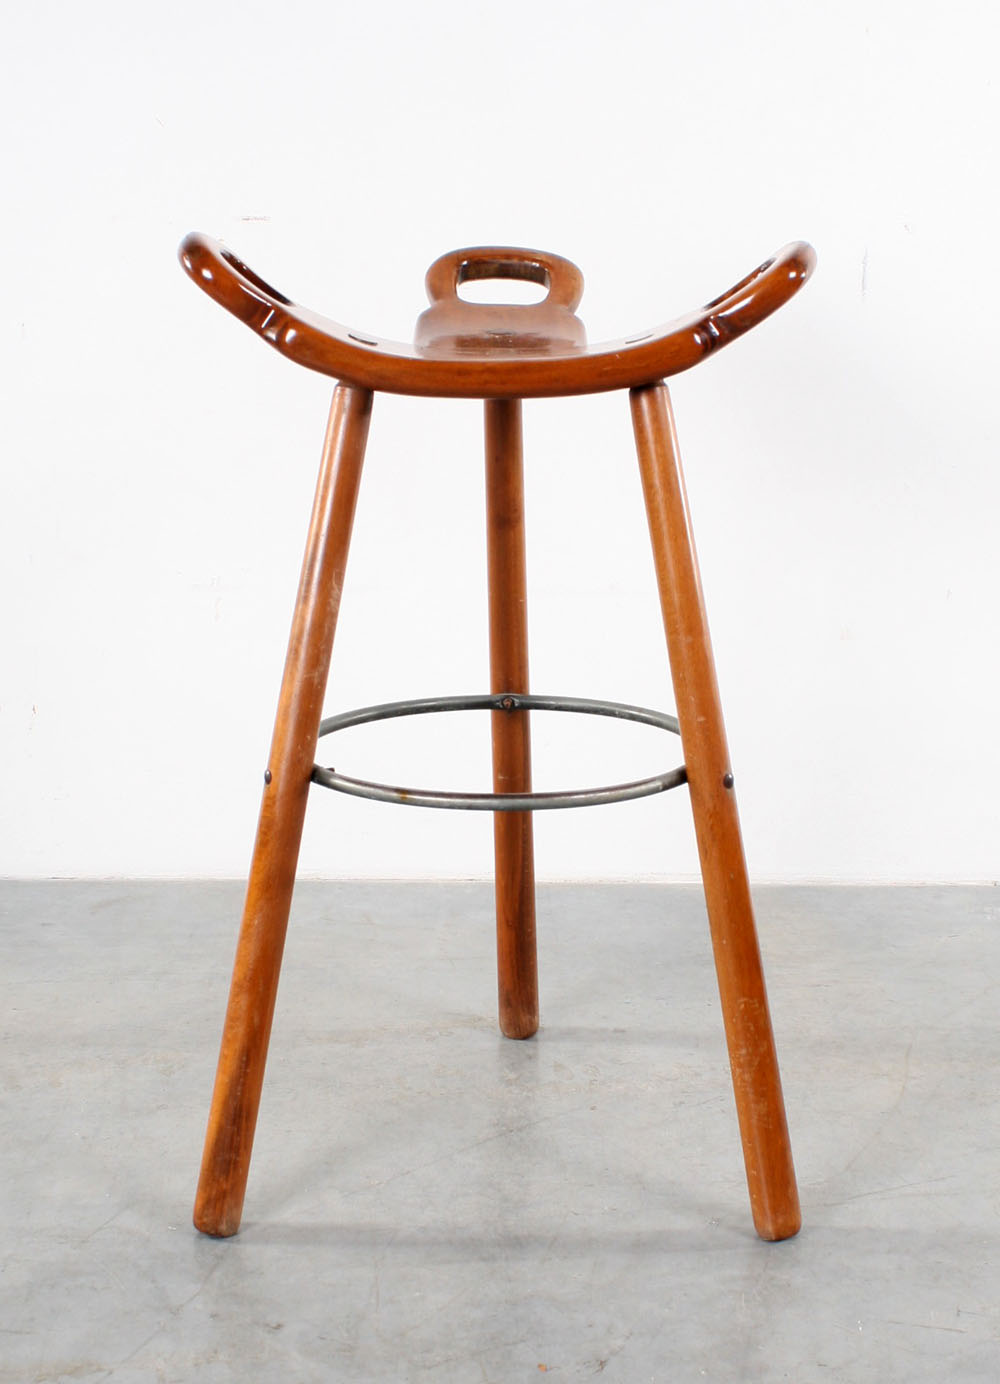 Eethoek Lamp Studio1900 | Spanish Bar Stools Brutalist Barkrukken